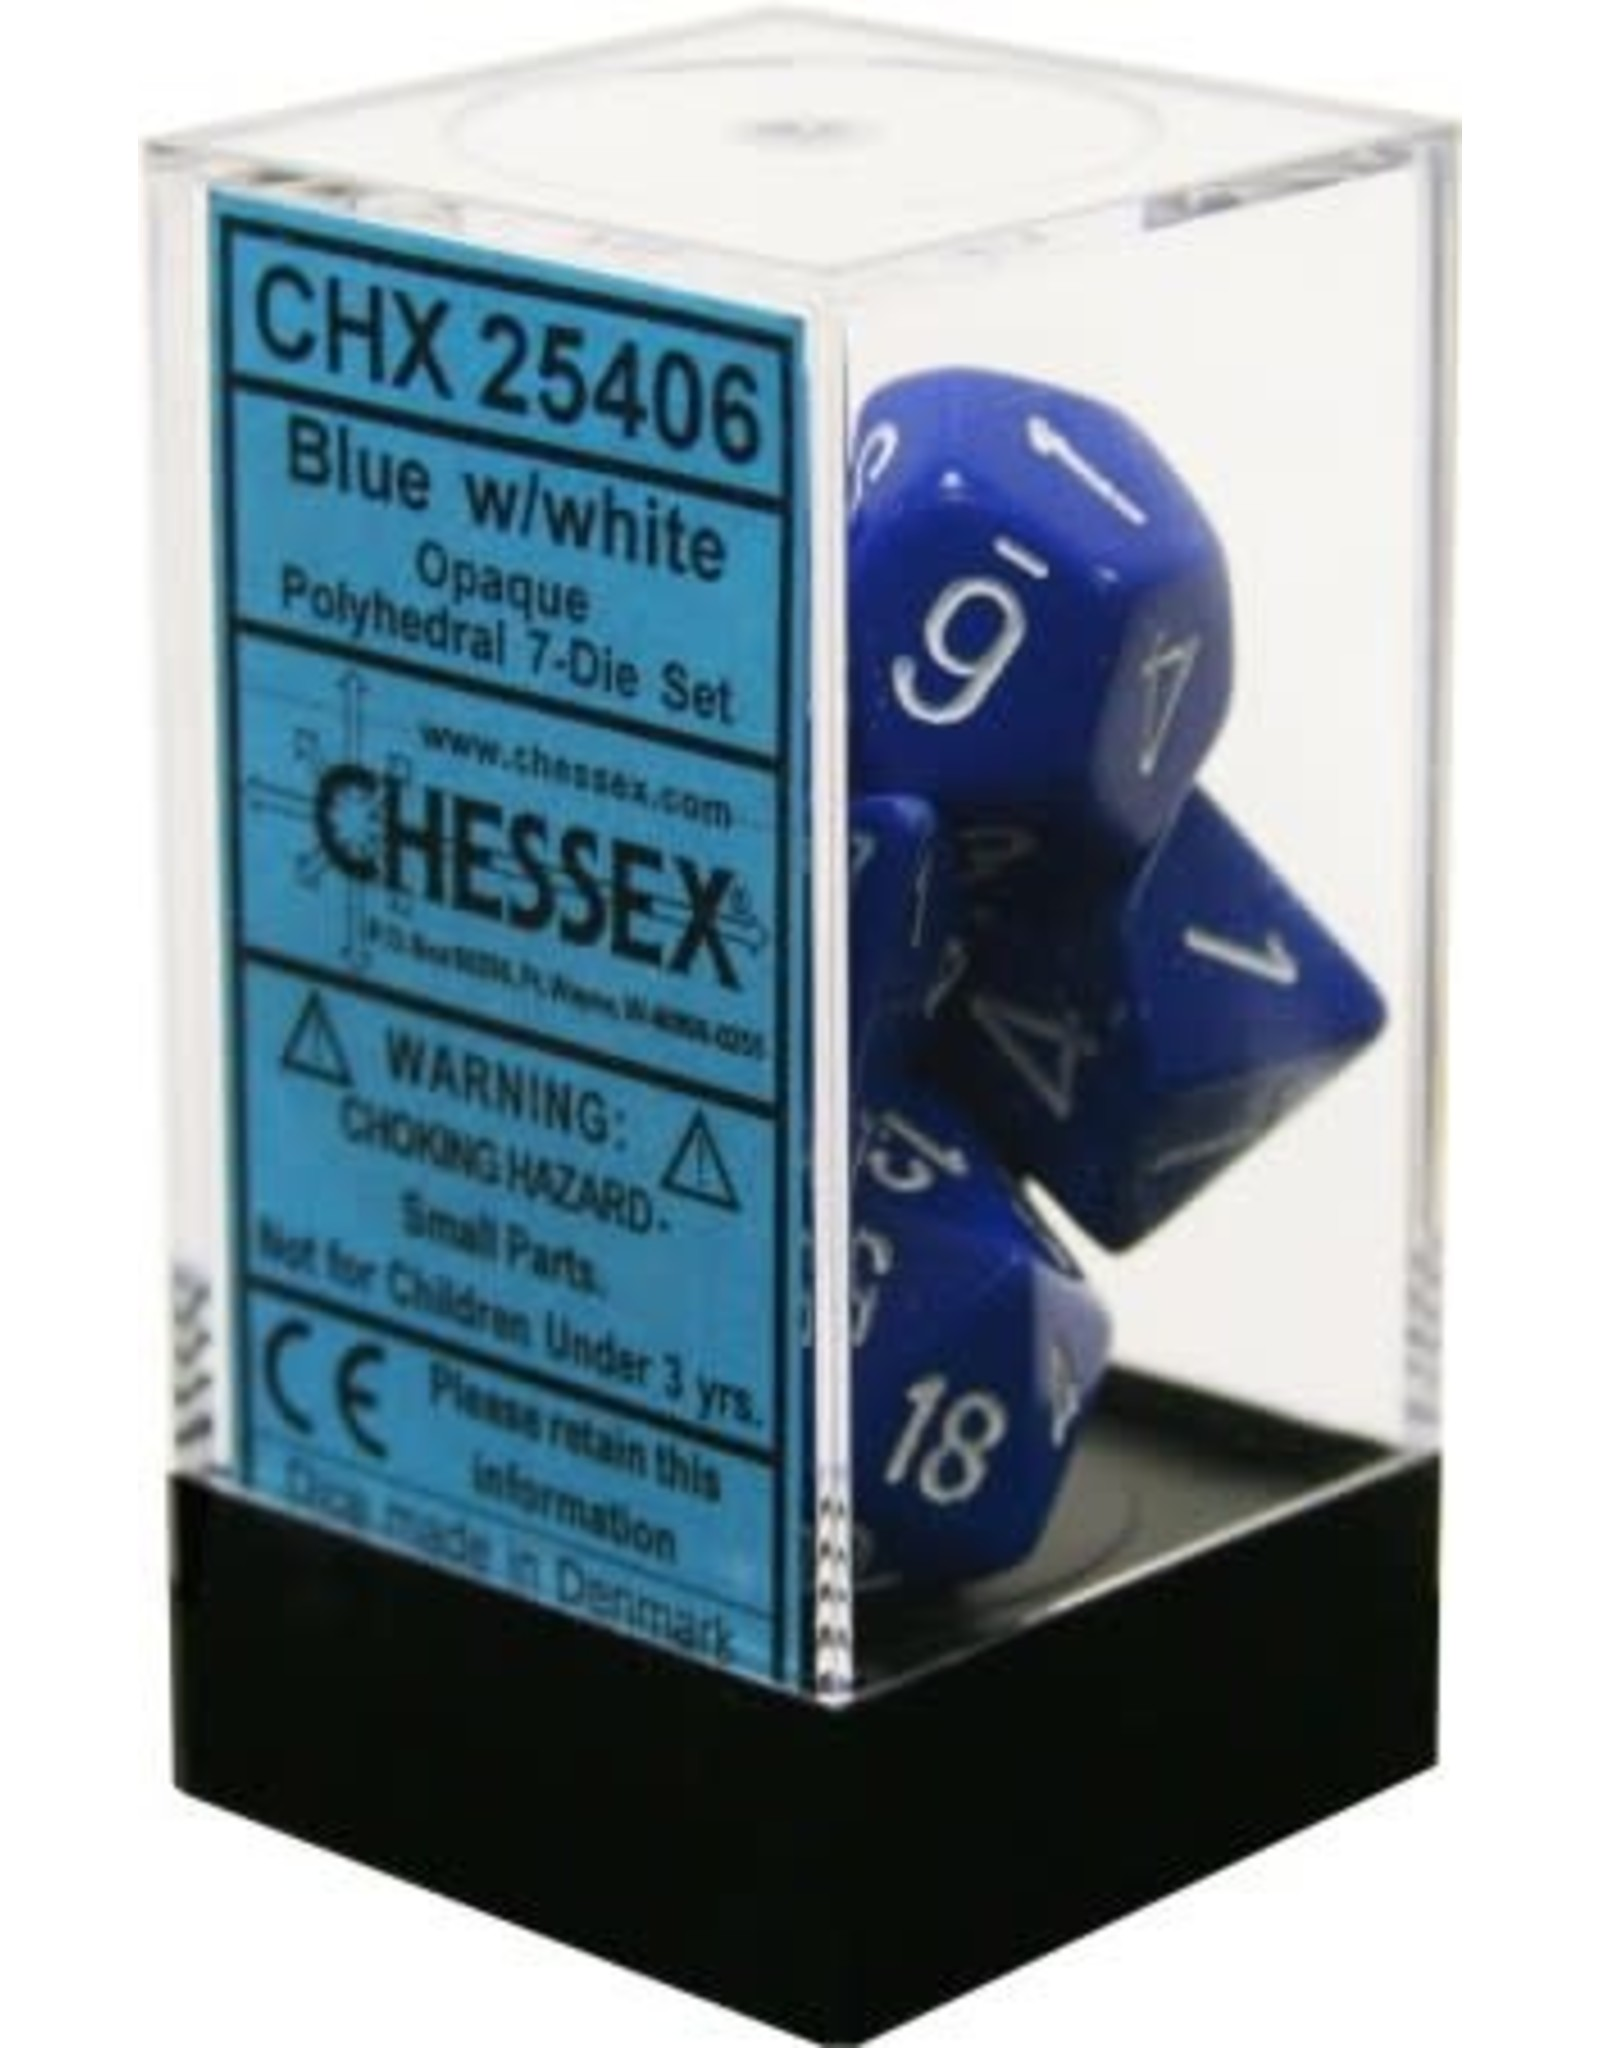 CHESSEX OPAQUE 7-DIE SET BLUE/WHITE